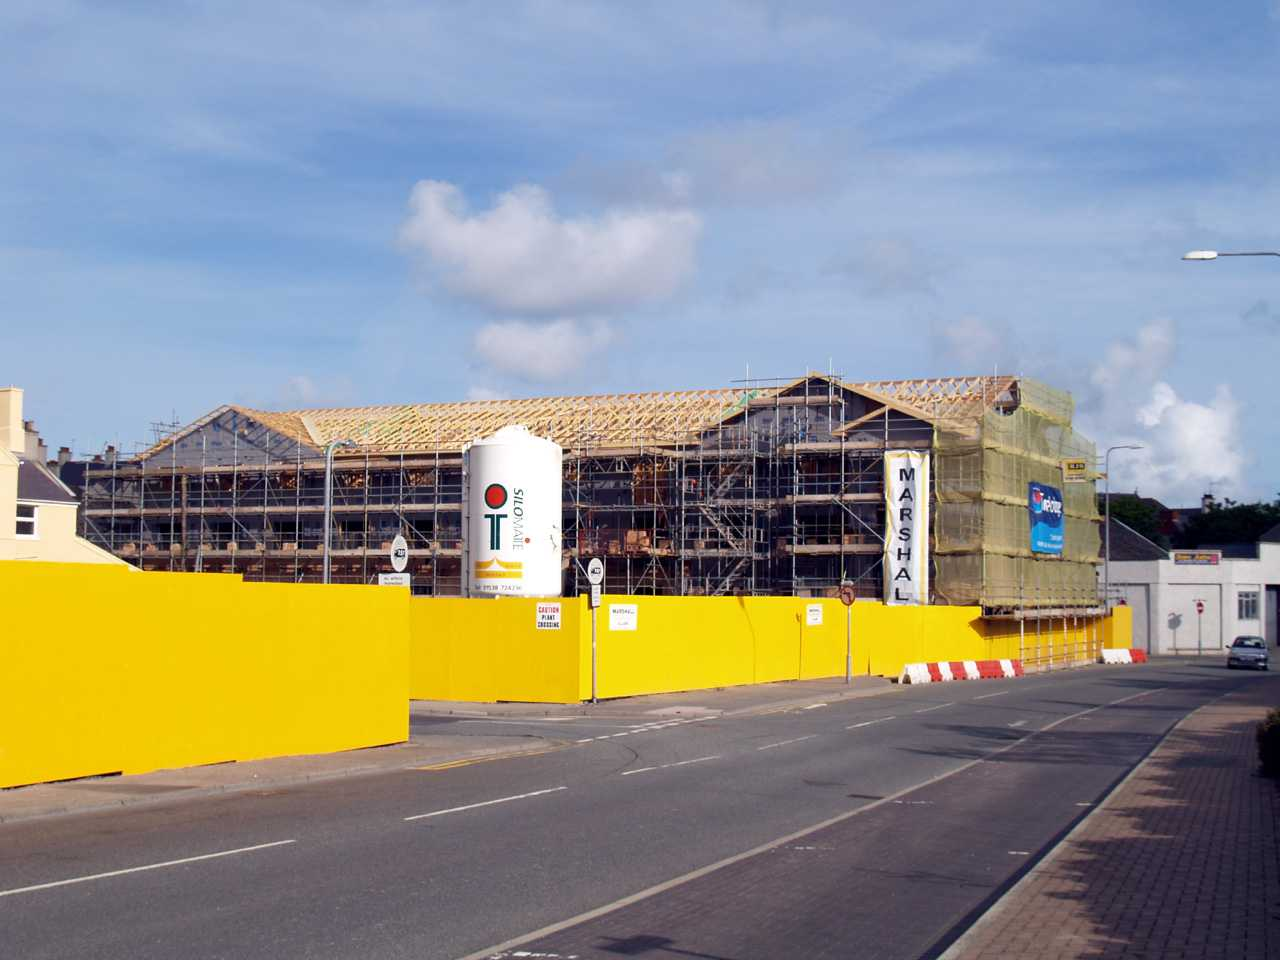 Anglesey, Holyhead, Travelodge Hotel under construction 260507